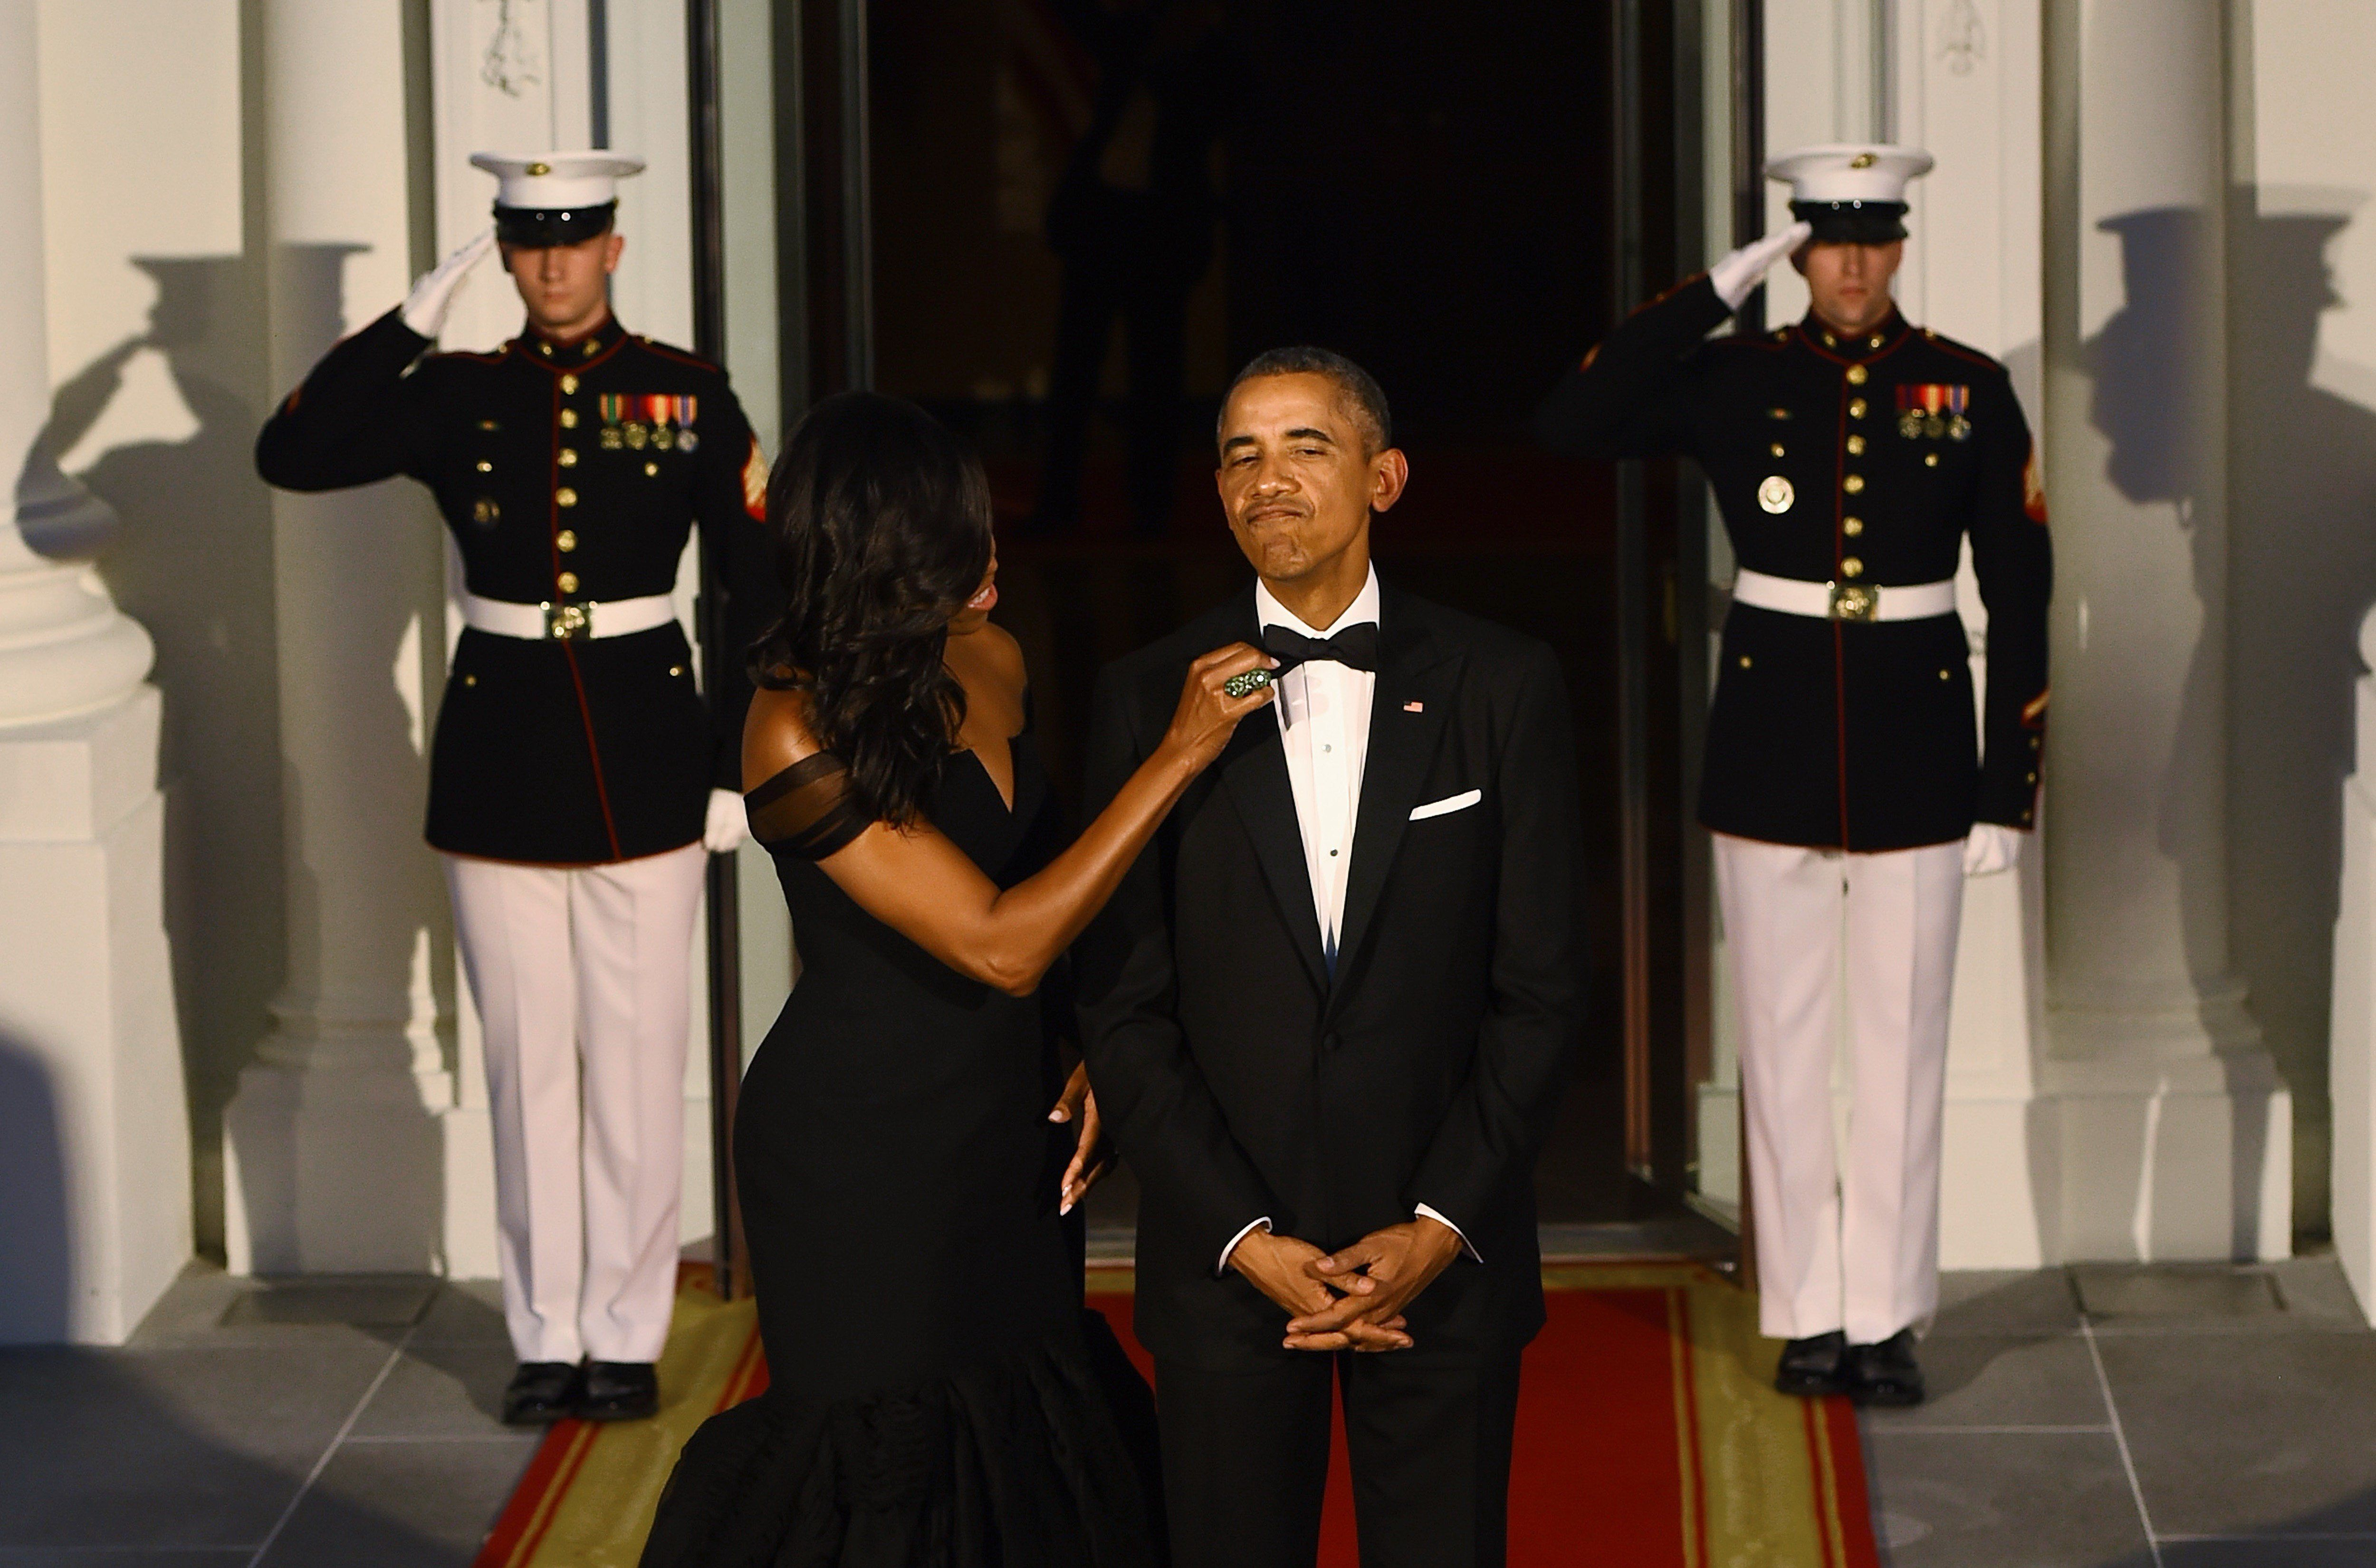 Juuuust right. Obama debuted a newtuxedo this night in 2015 and then wore it the remainder of his presidency.